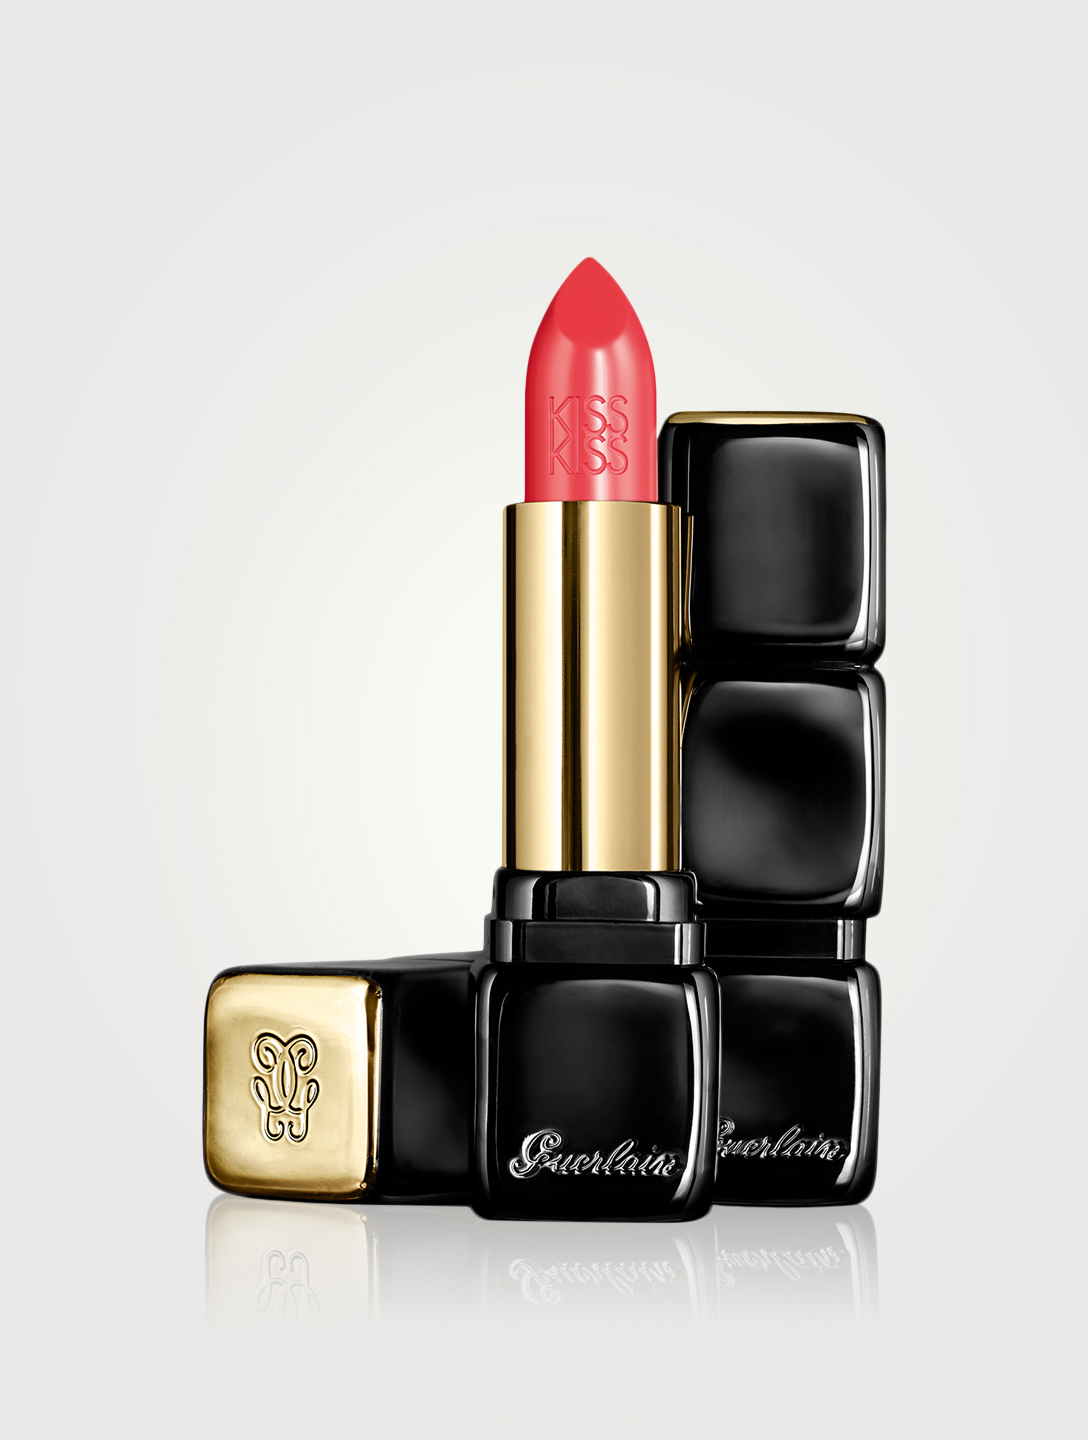 GUERLAIN KissKiss Shaping Cream Lipstick Beauty Orange